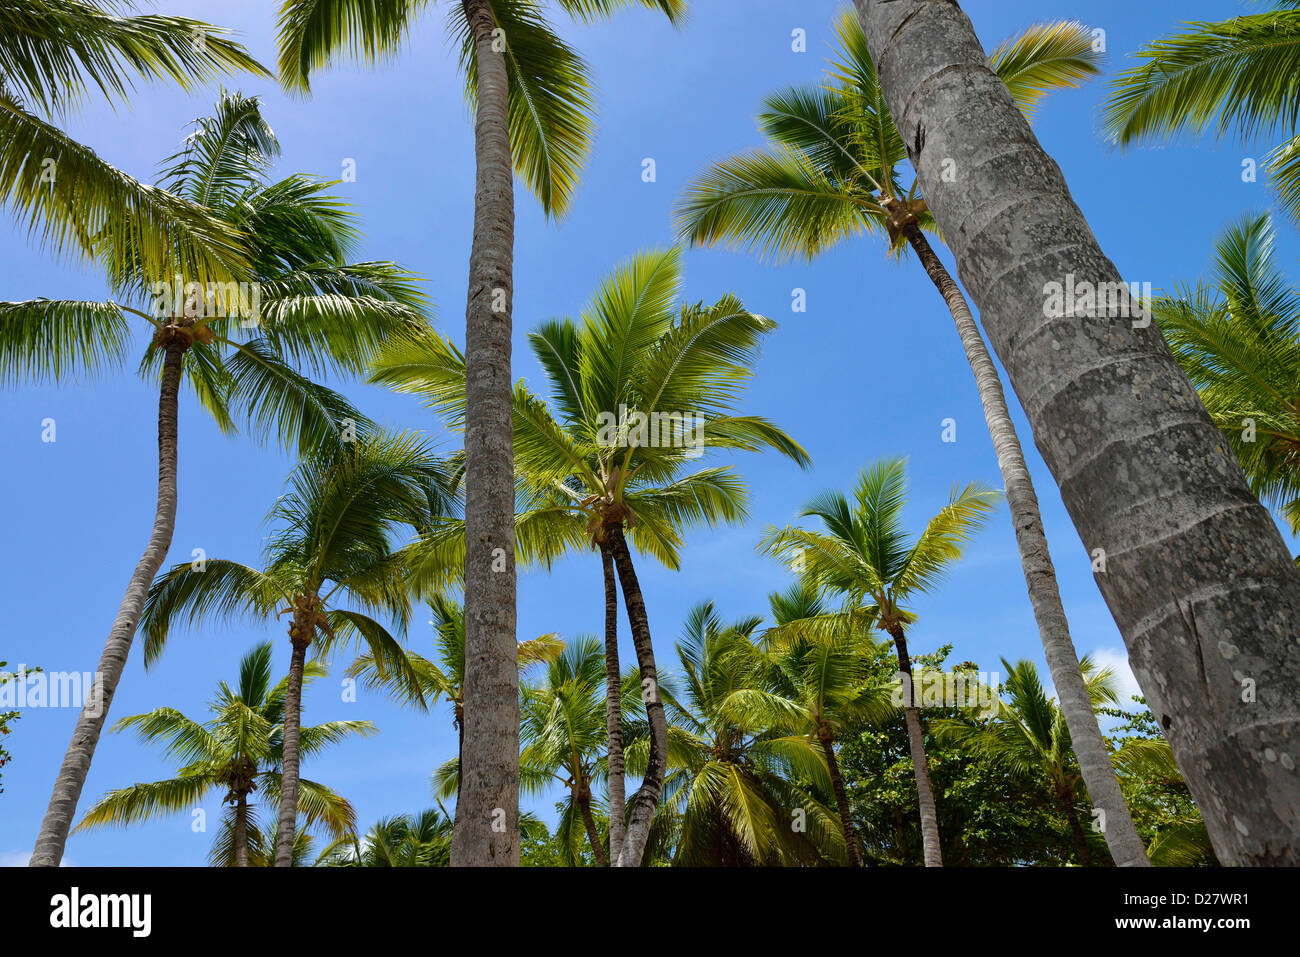 Palm trees at Punta Cana, Dominican Republic - Stock Image